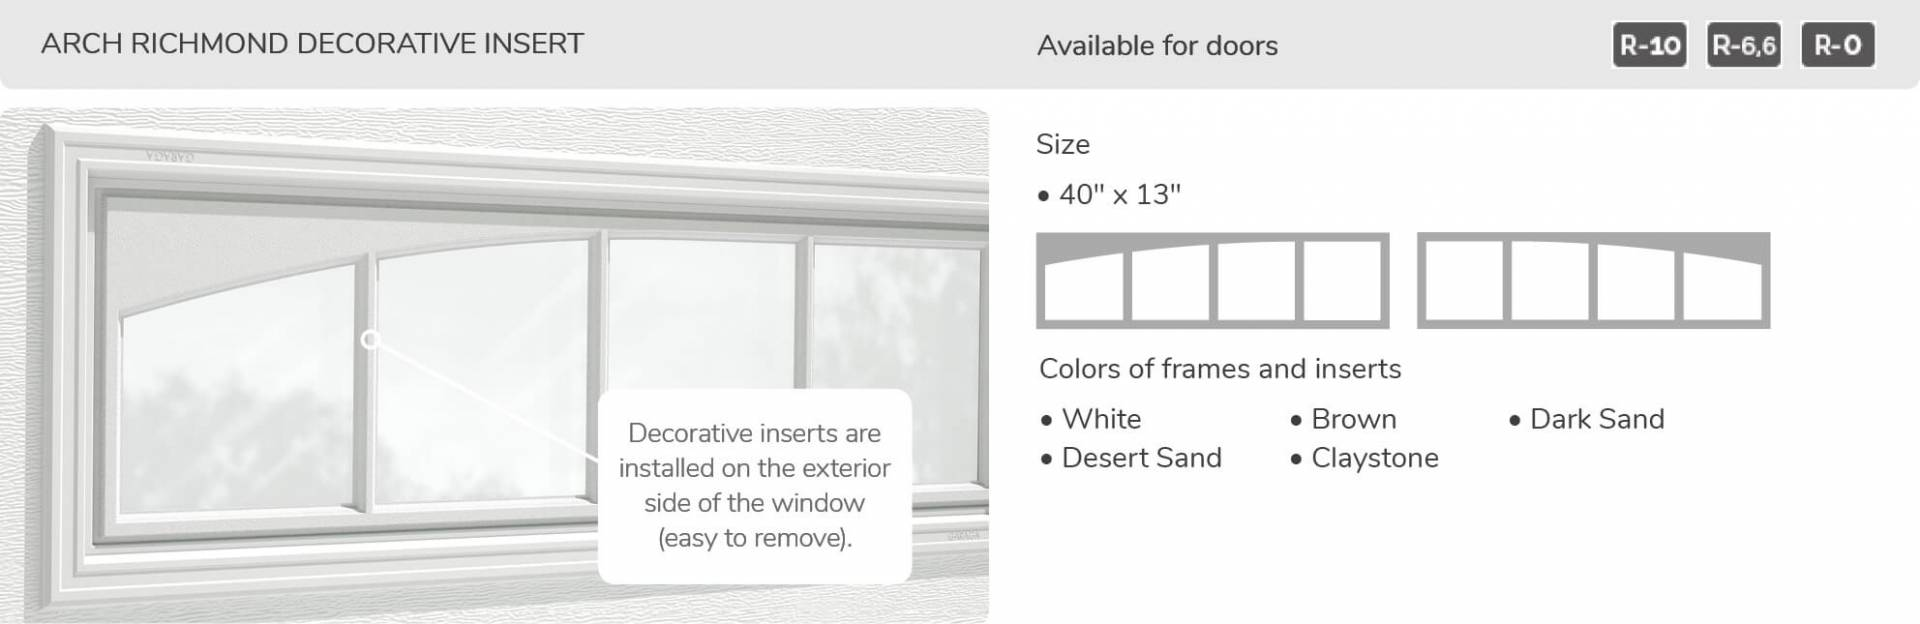 "Arch Richmond Decorative Insert, 40"" x 13"", available for doors R-10, R-6.6, R-0"